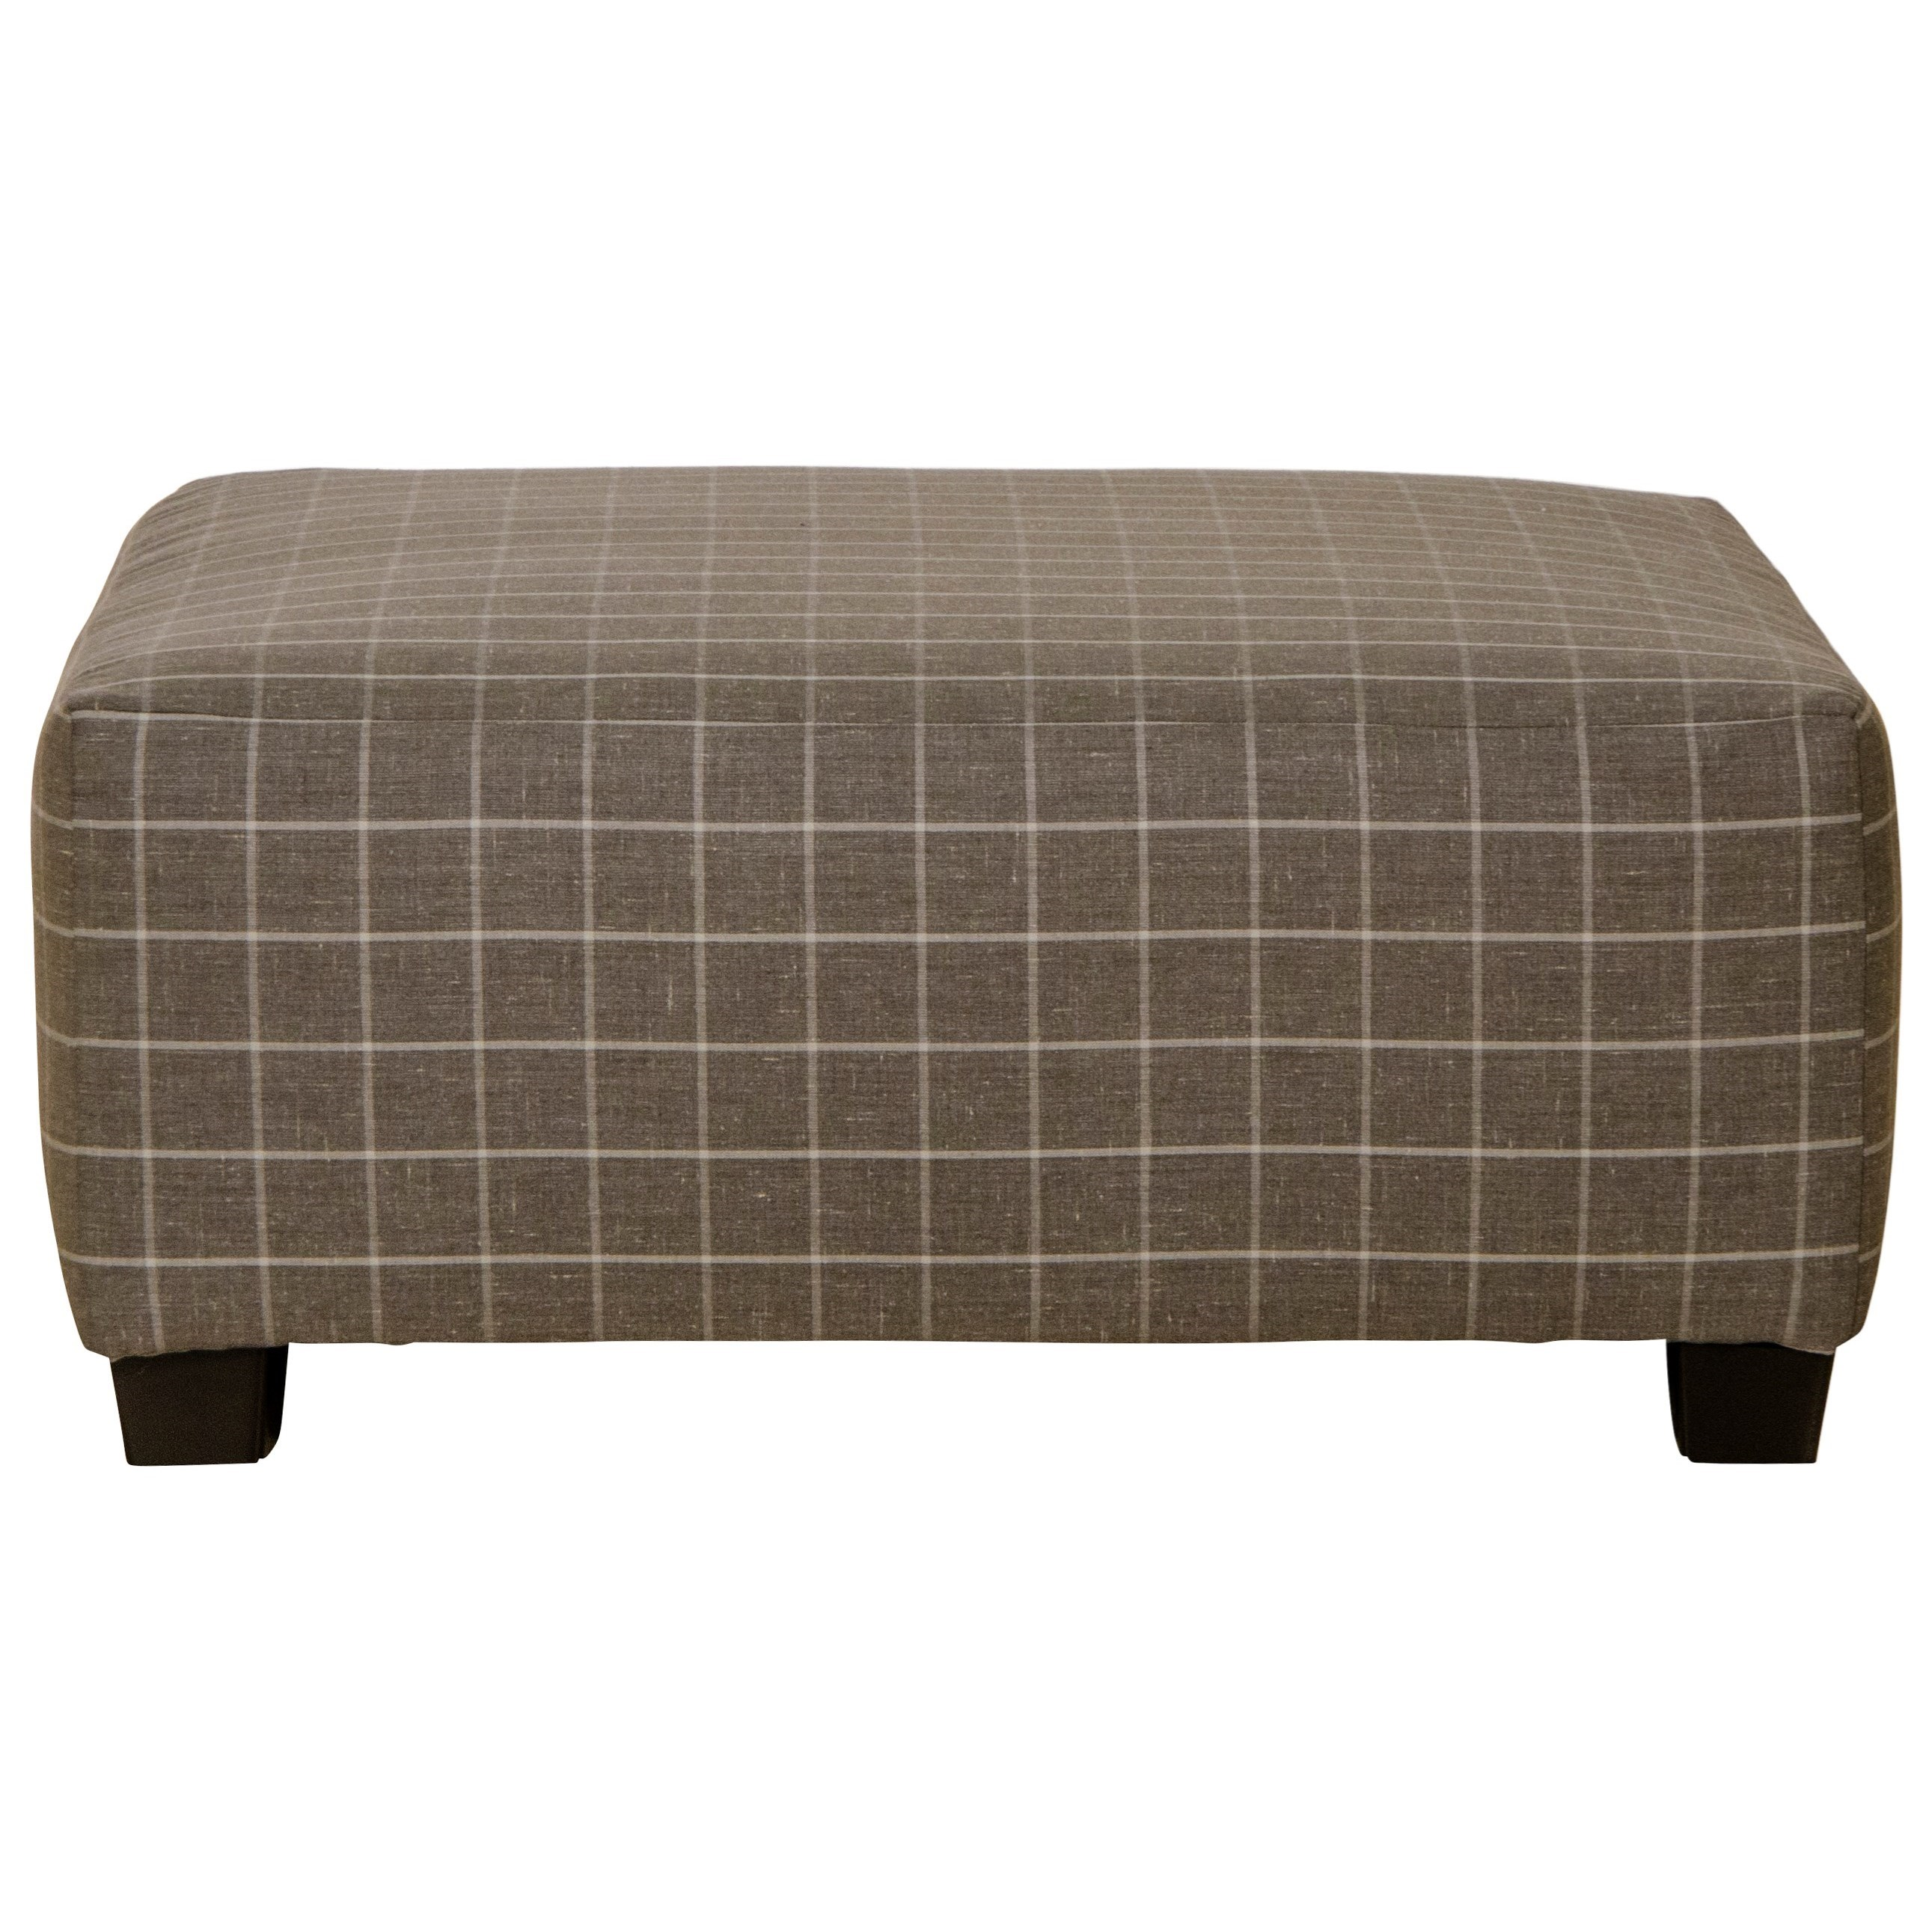 Lewiston Cocktail Ottoman by Jackson Furniture at Northeast Factory Direct